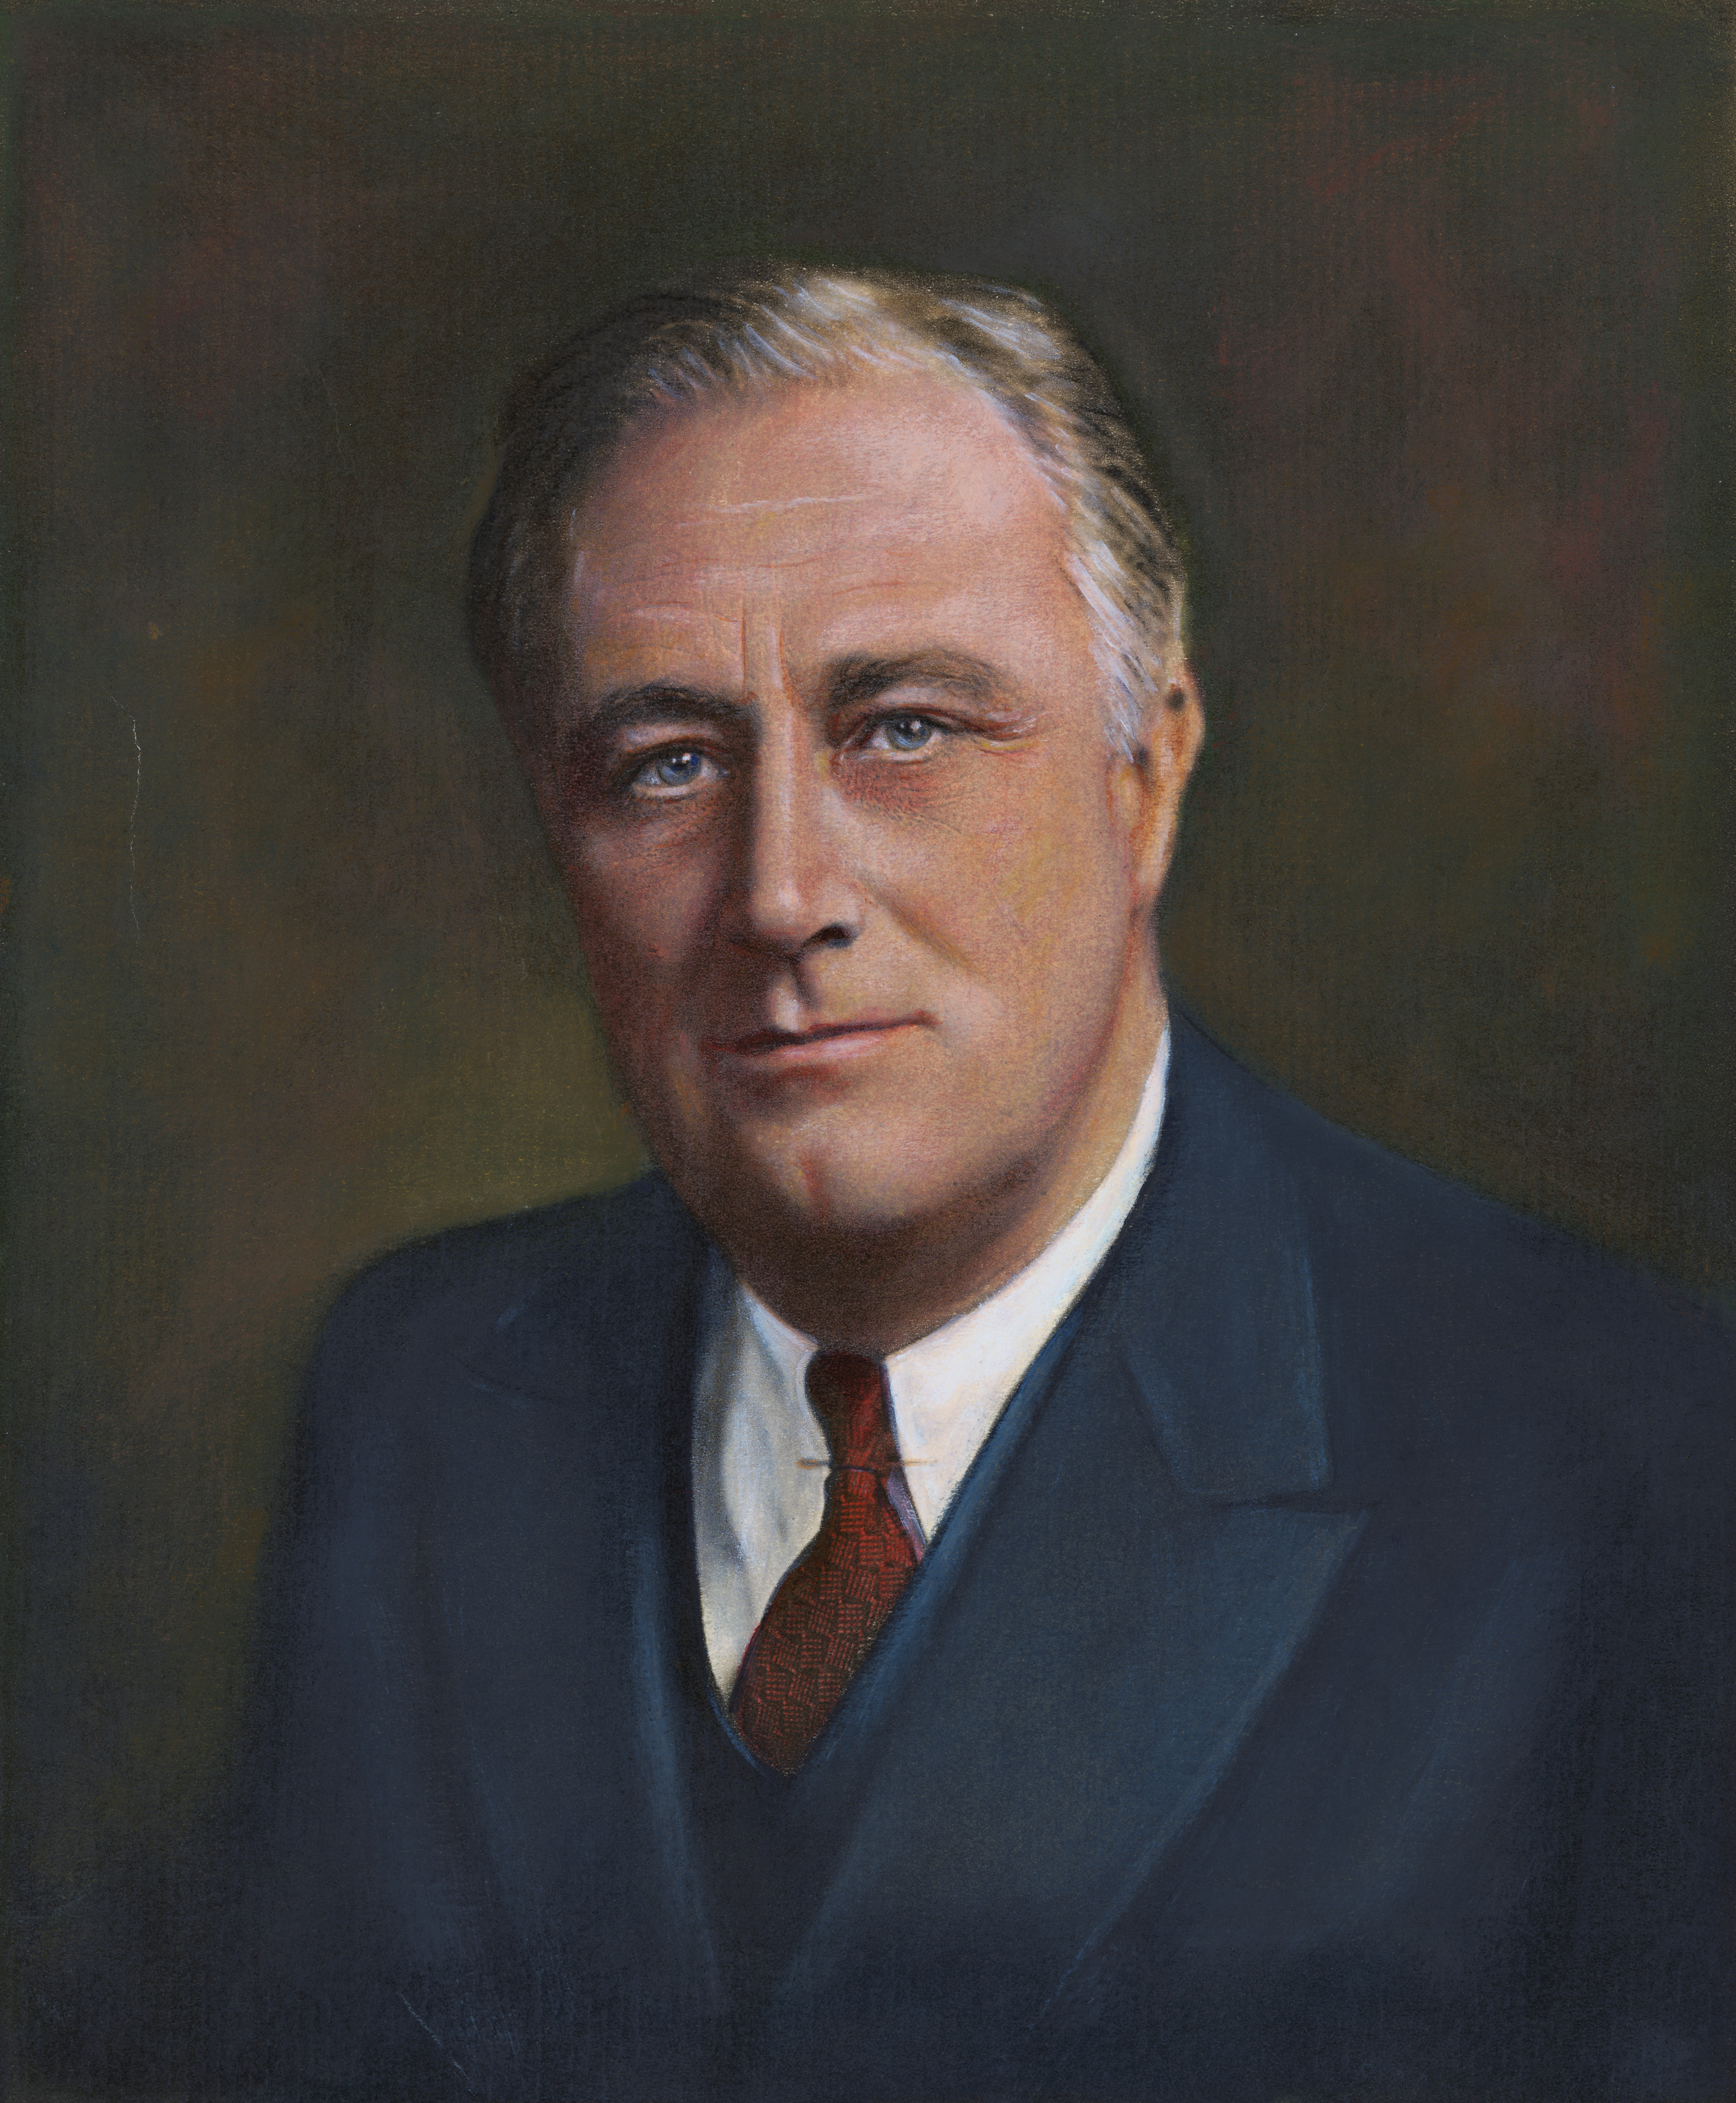 franklin d roosevelt the new deal In short, the new deal, and the rhetorical support given to the cause of civil rights by both franklin and eleanor roosevelt gave the african american community hope the chance to dream of a better future, no matter how difficult the struggle might be along the way.